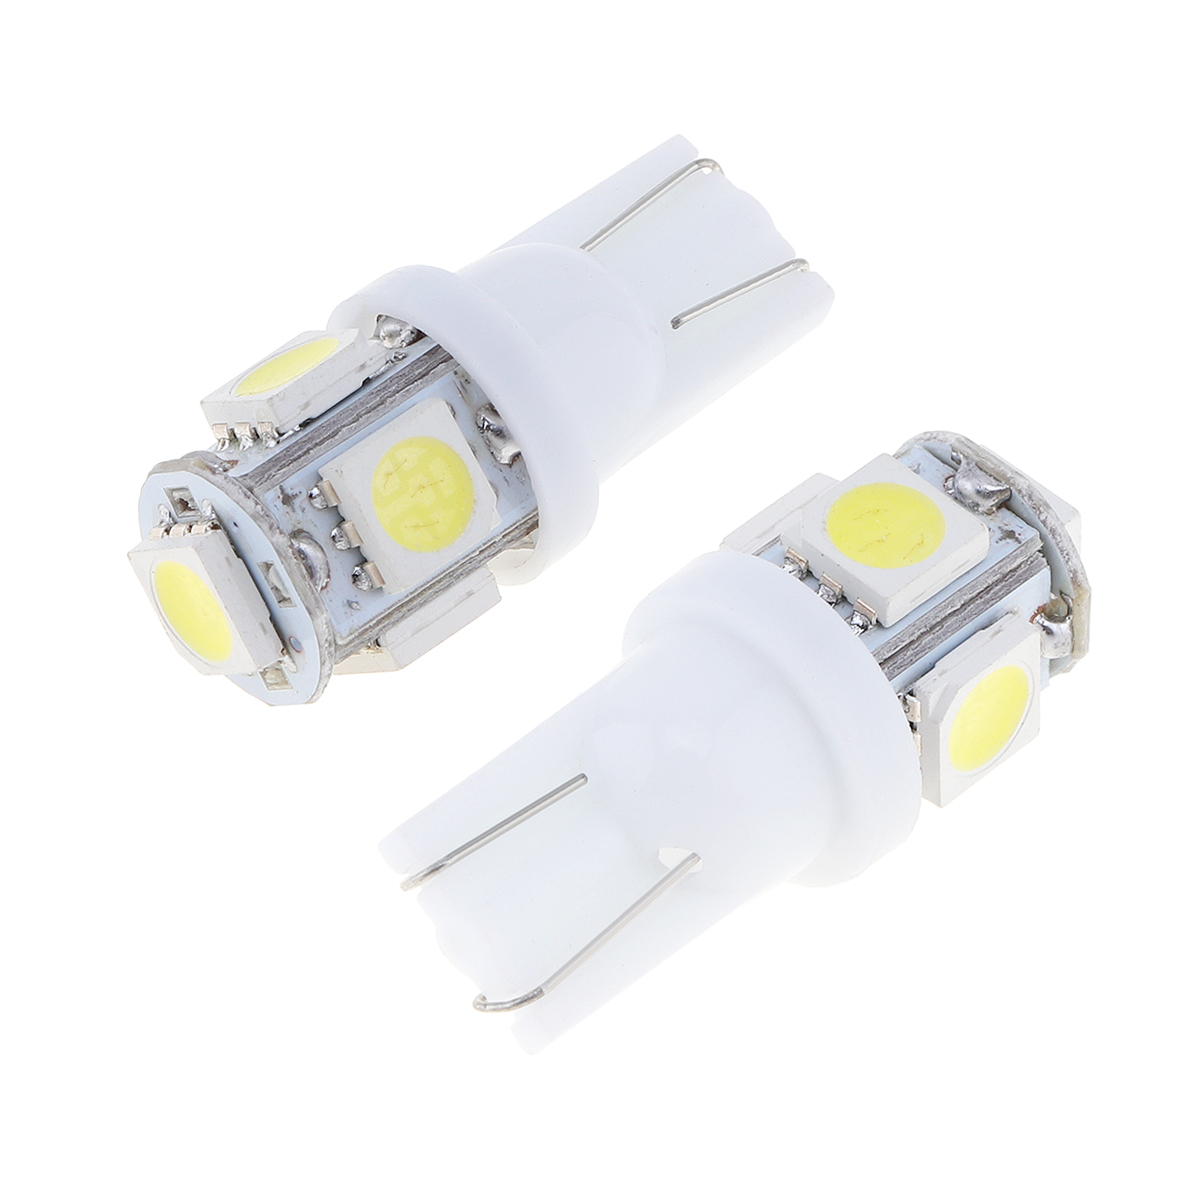 20x Car LED Signal Blub Interior Reading Light Super Bright Auto Wedge Side License Plate Trunk Luggage Lamp Super White in Car Headlight Bulbs LED from Automobiles Motorcycles